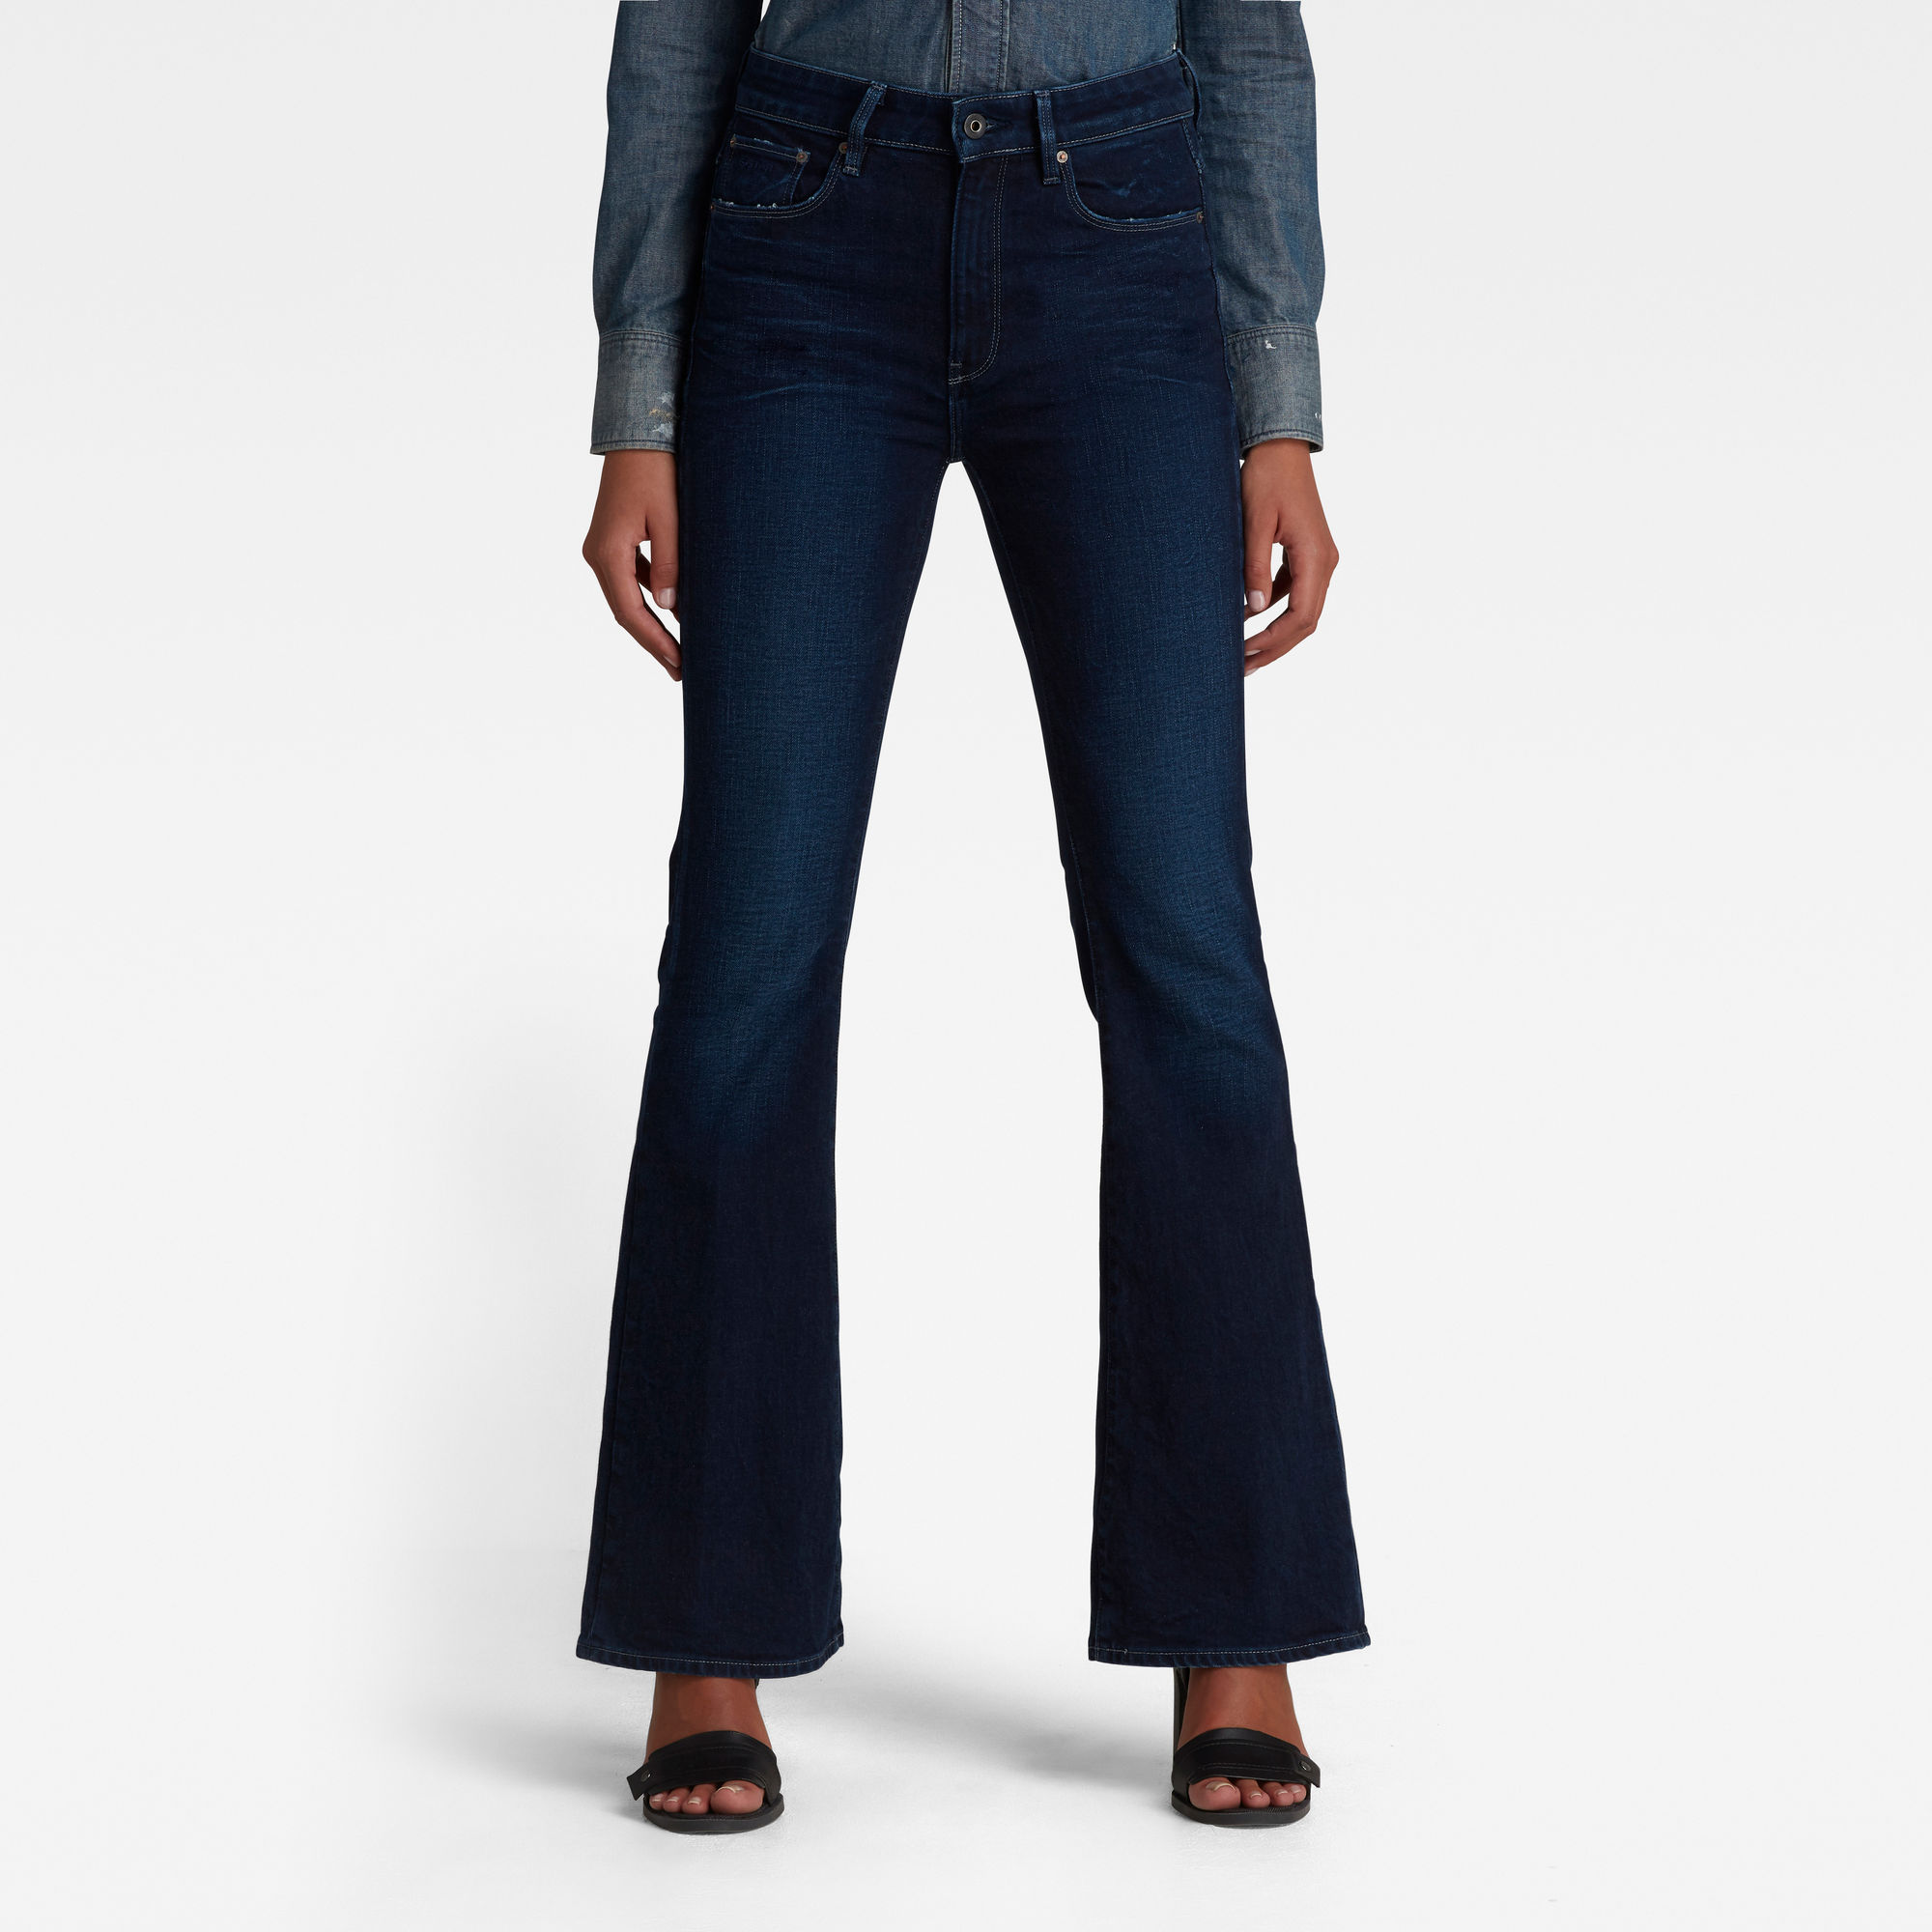 G-Star RAW Dames 3301 Flare Jeans Donkerblauw